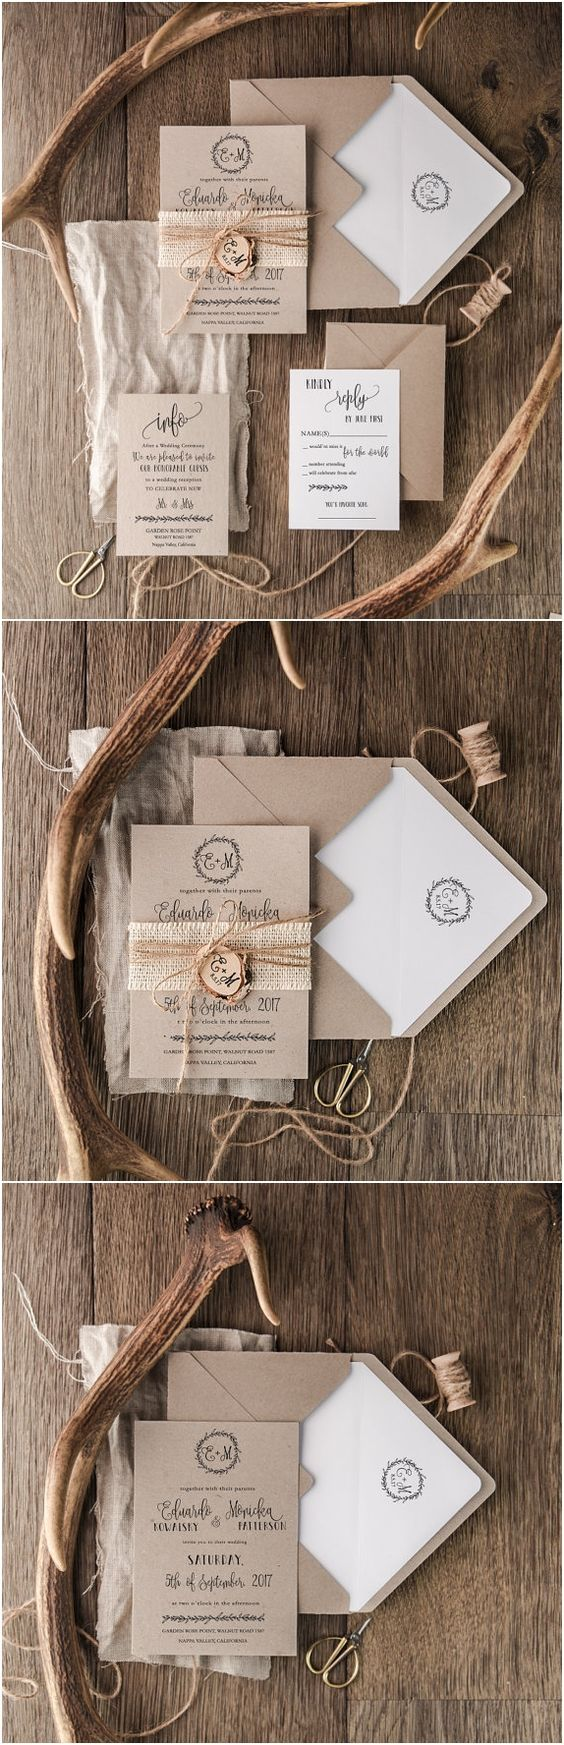 Burlap Wooden Rustic Wedding Invitation / http://www.deerpearlflowers.com/rustic-wedding-invitations/